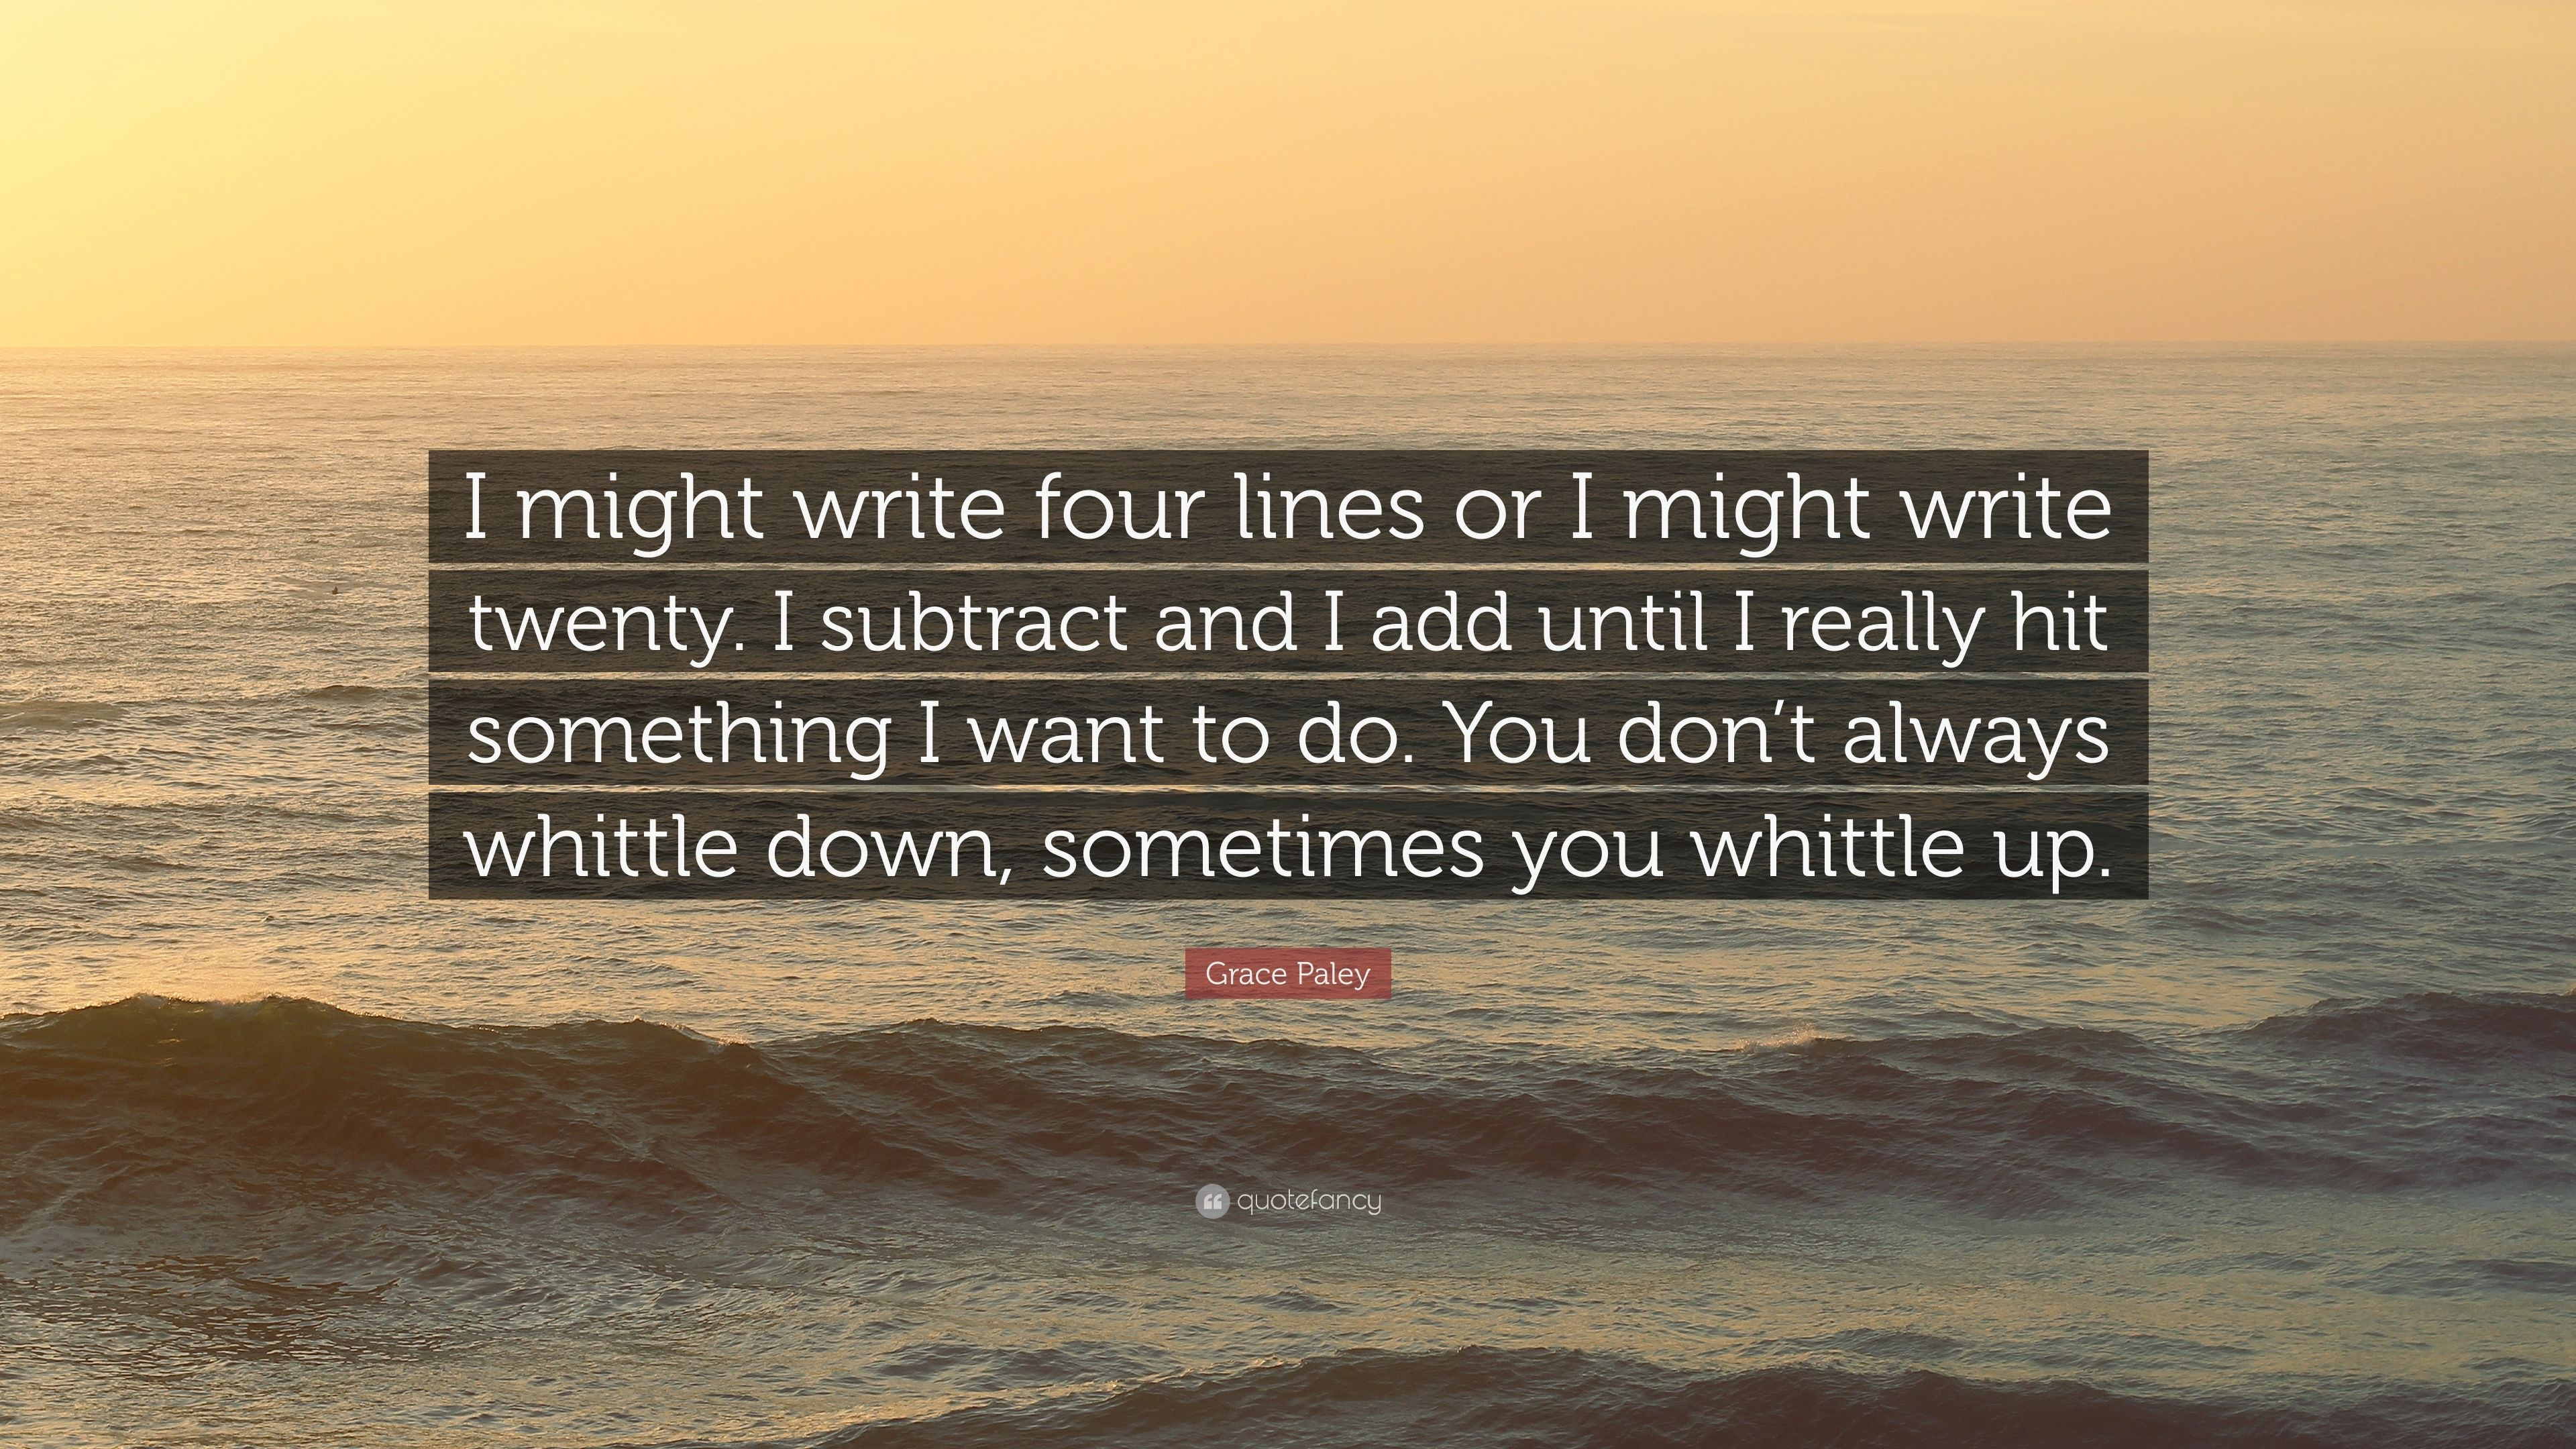 Grace Paley Quote I Might Write Four Lines Or I Might Write Twenty I Subtract And I Add Until